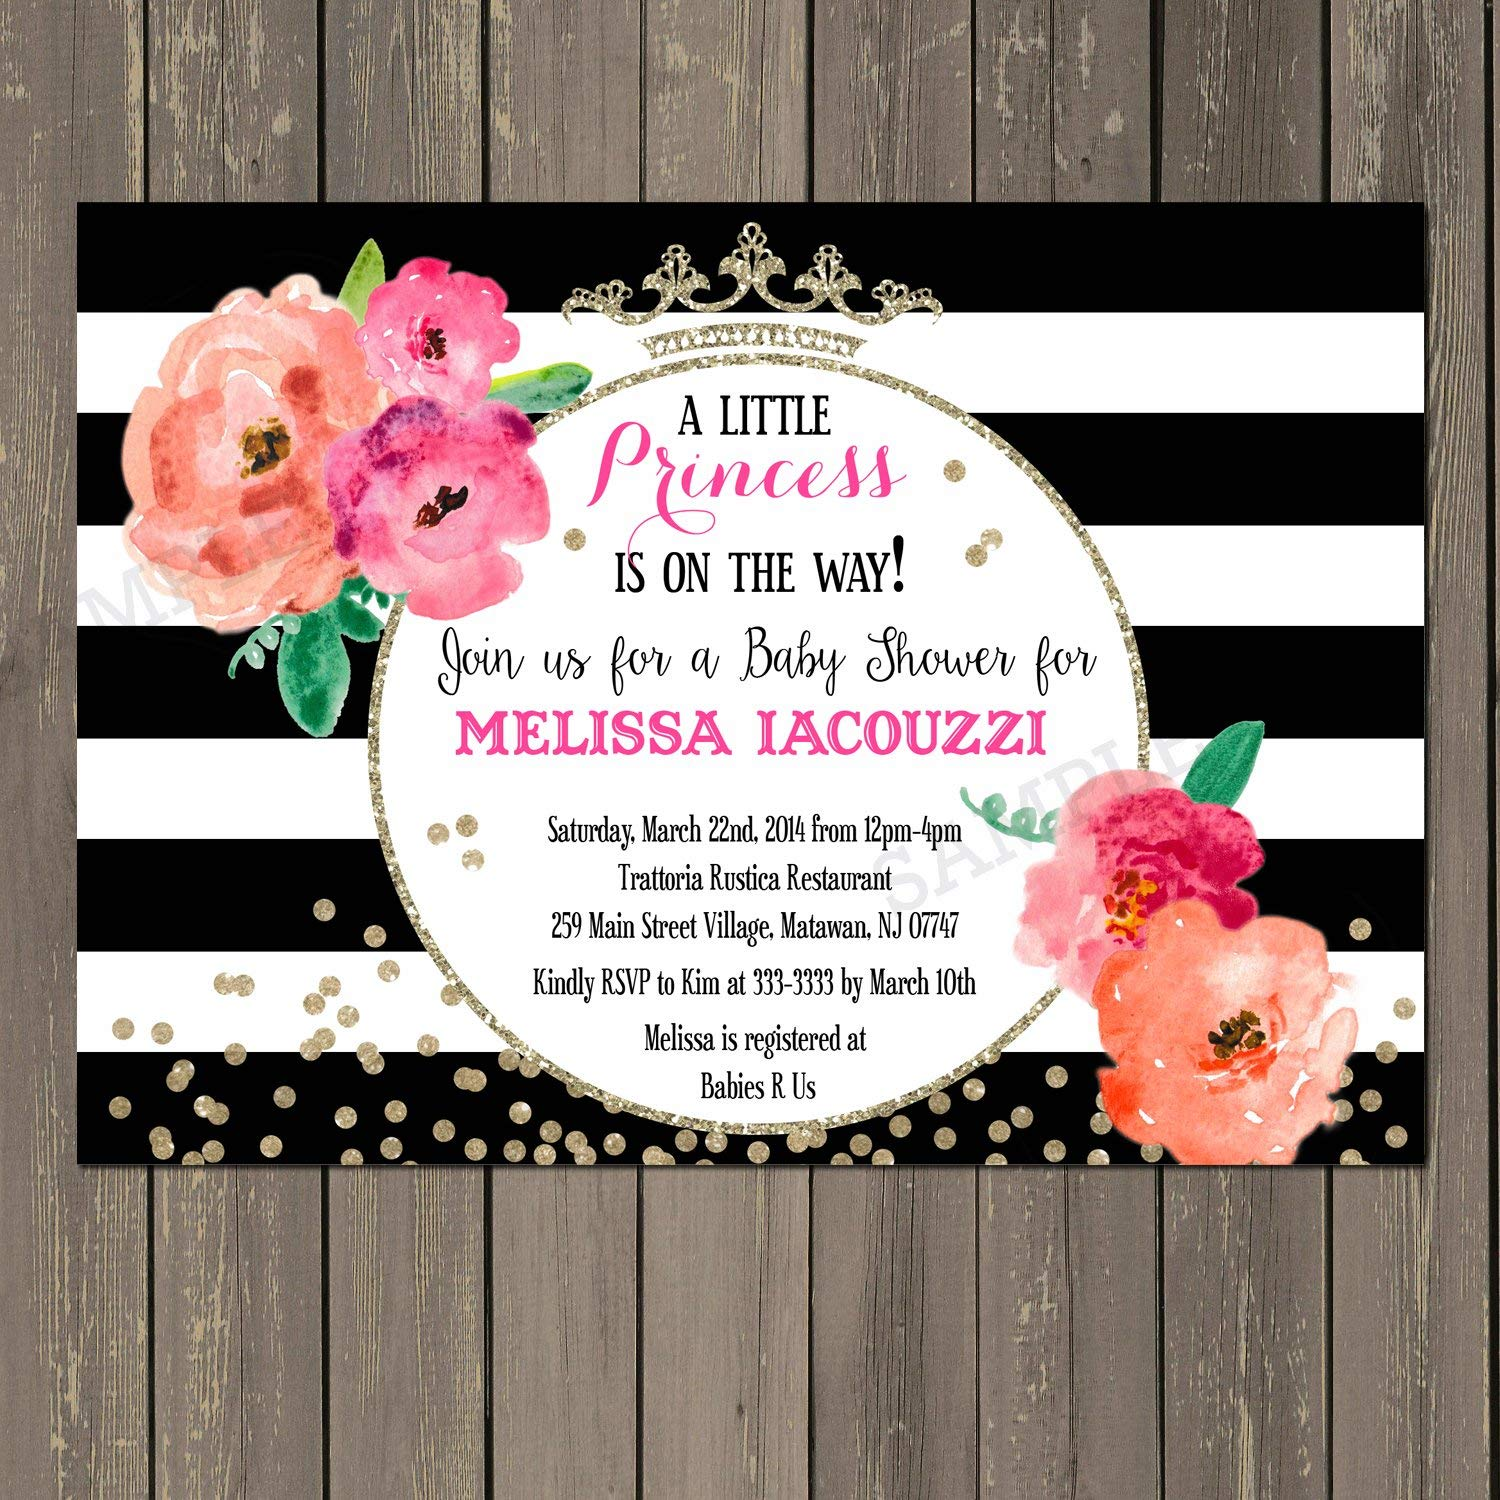 Princess Baby Shower Invitation, Floral Black & White Stripe Baby Shower Invite, Gold Glitter Look Watercolor Baby Shower, Baby Girl Shower Invitation